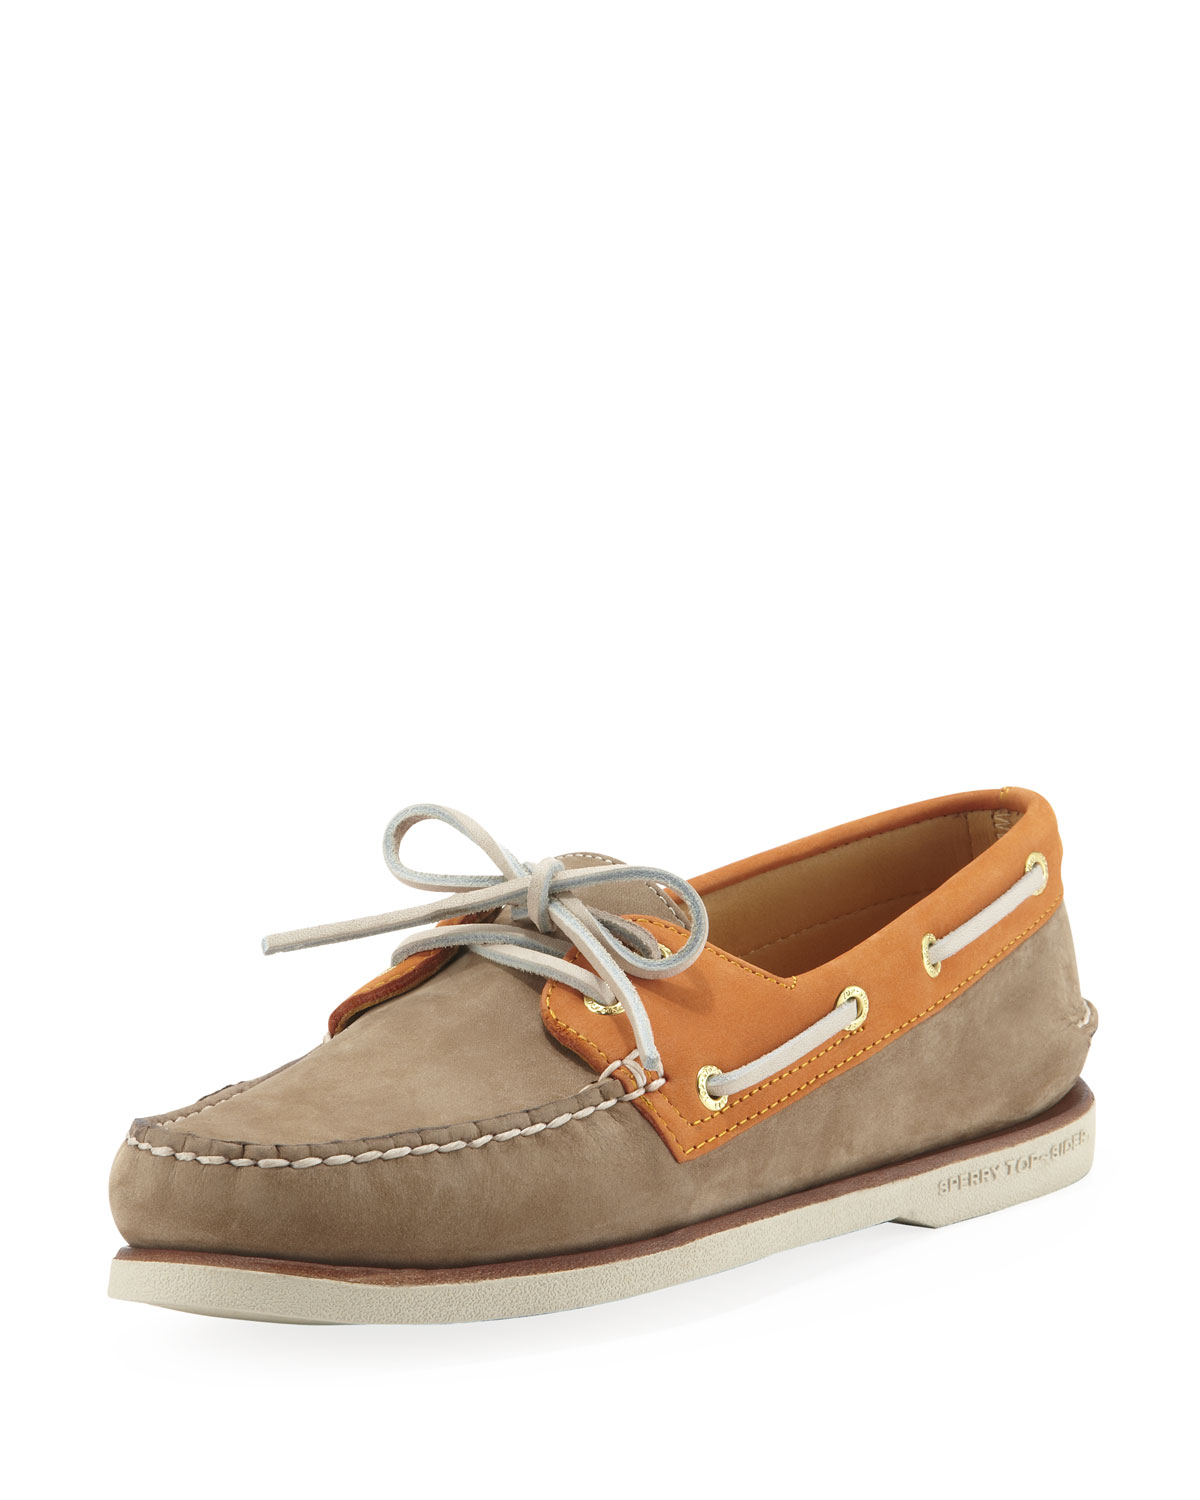 sperry sperry sperry haut sider or tasse originales authentiques bateau chaussure, tan / orange 589975